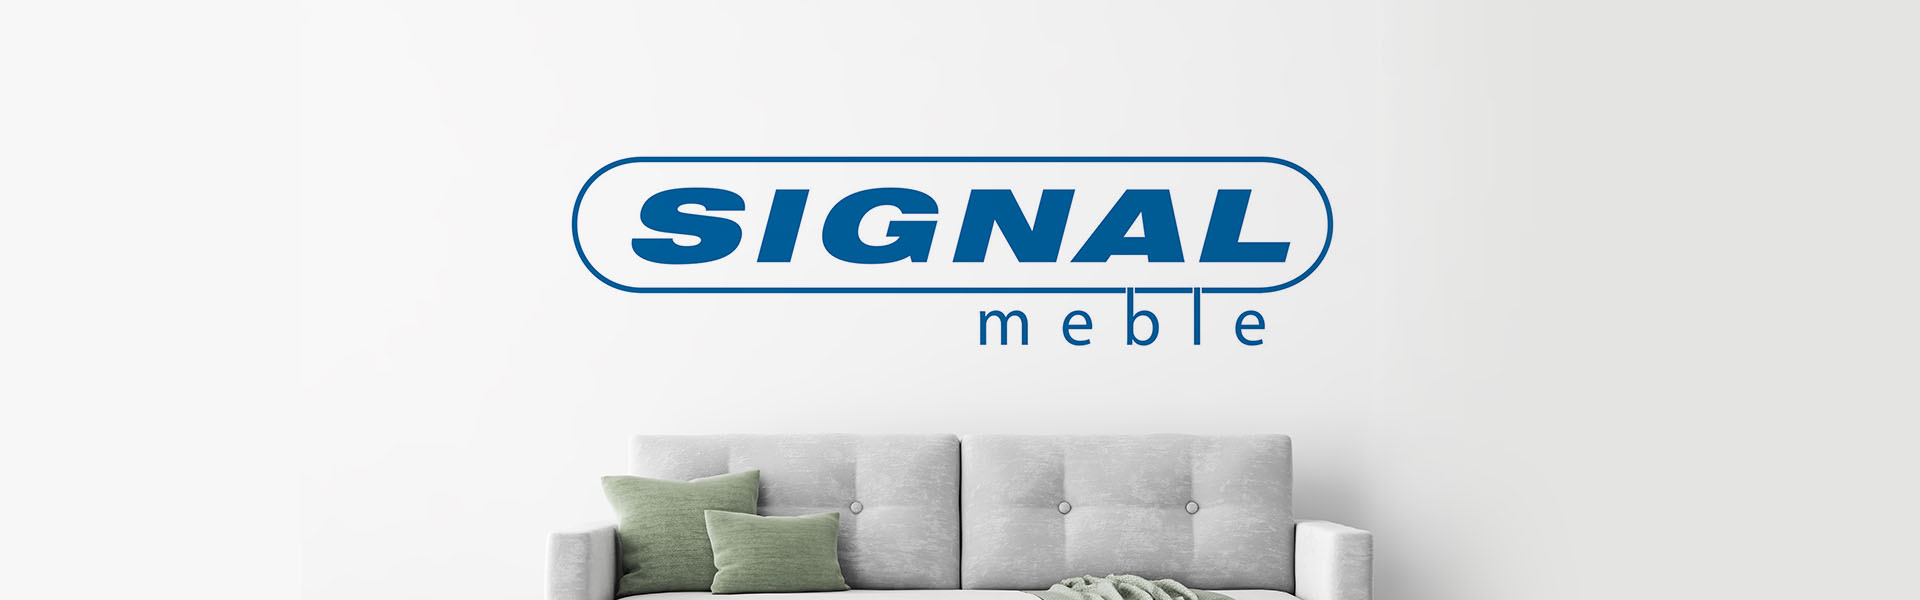 Diivanilaud Lisa Basic                             Signal Meble